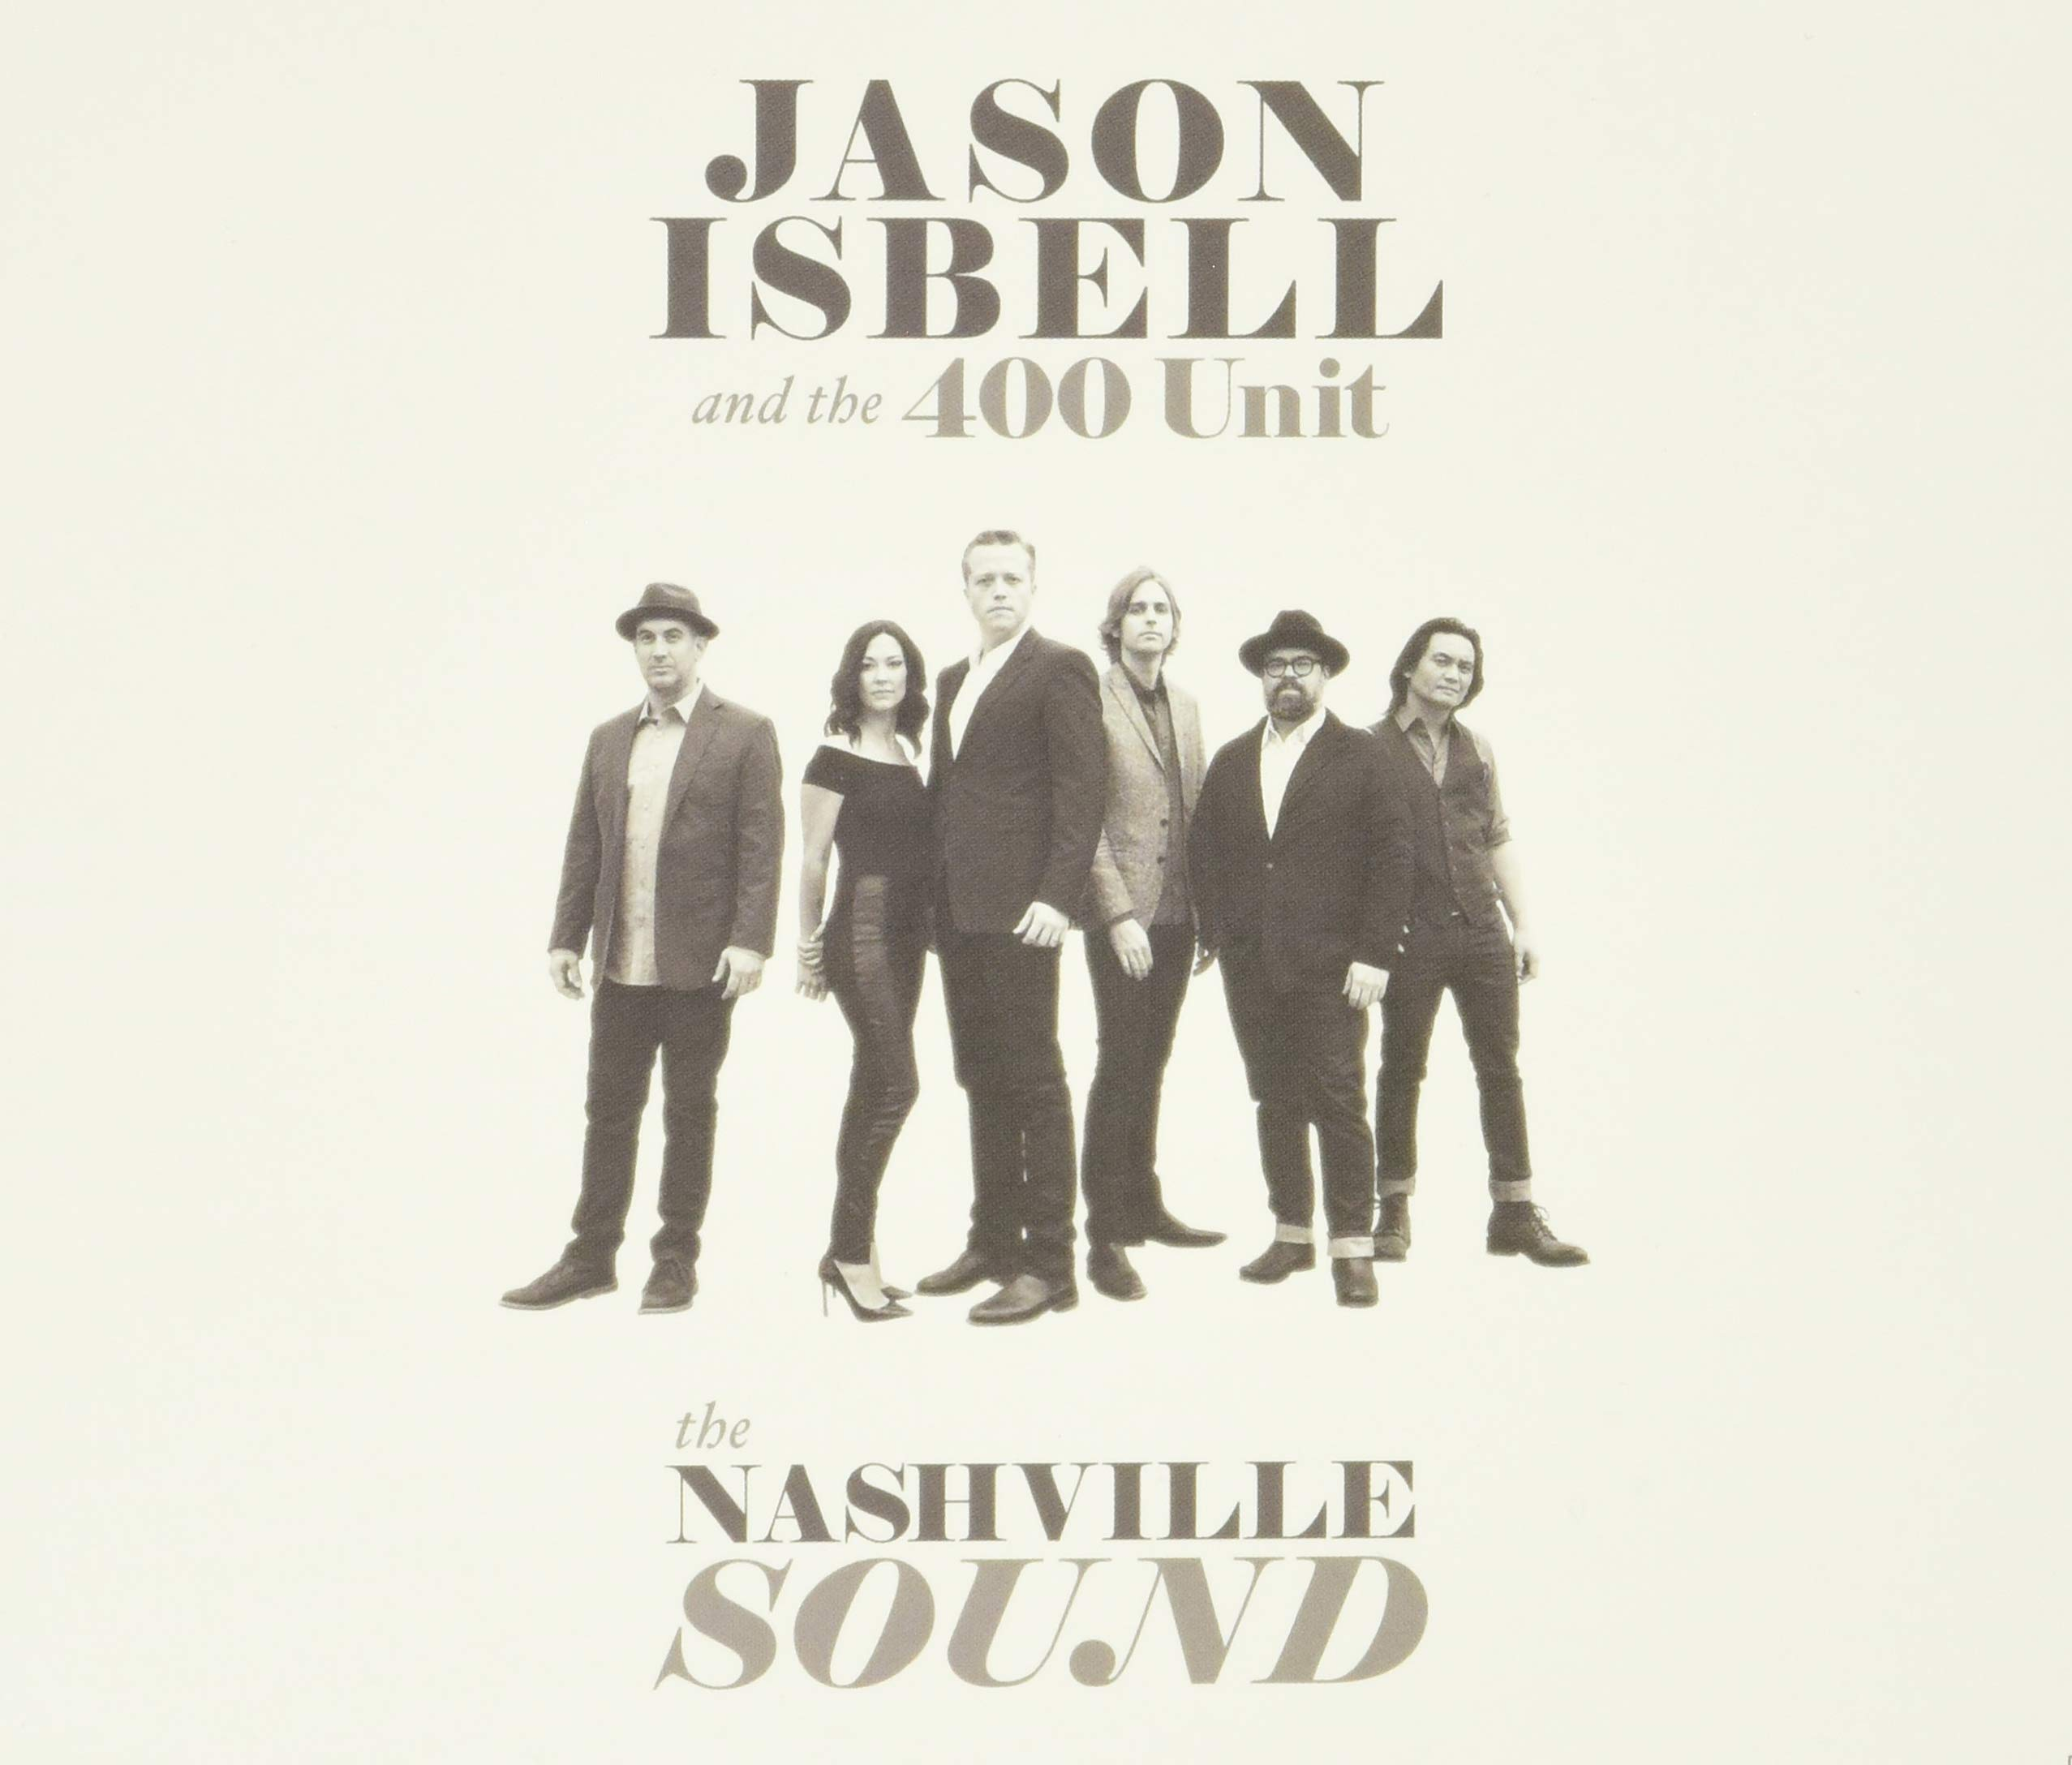 Jason Isbell and the 400 Unit – The Nashville Sound (2017) [FLAC]